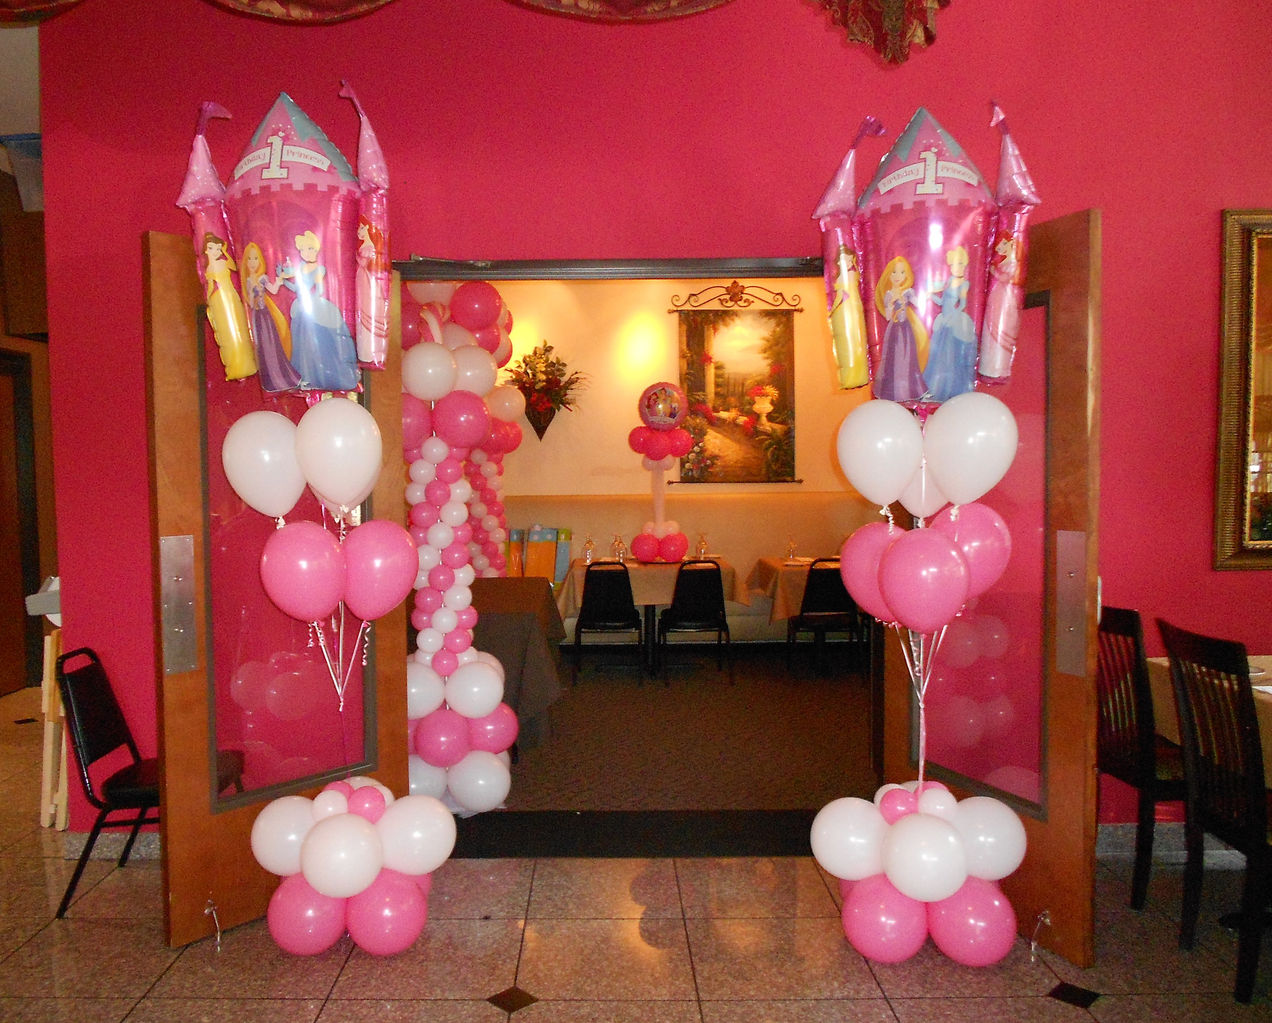 Decoration ideas 80s party dance floor best prom for 80s prom decoration ideas